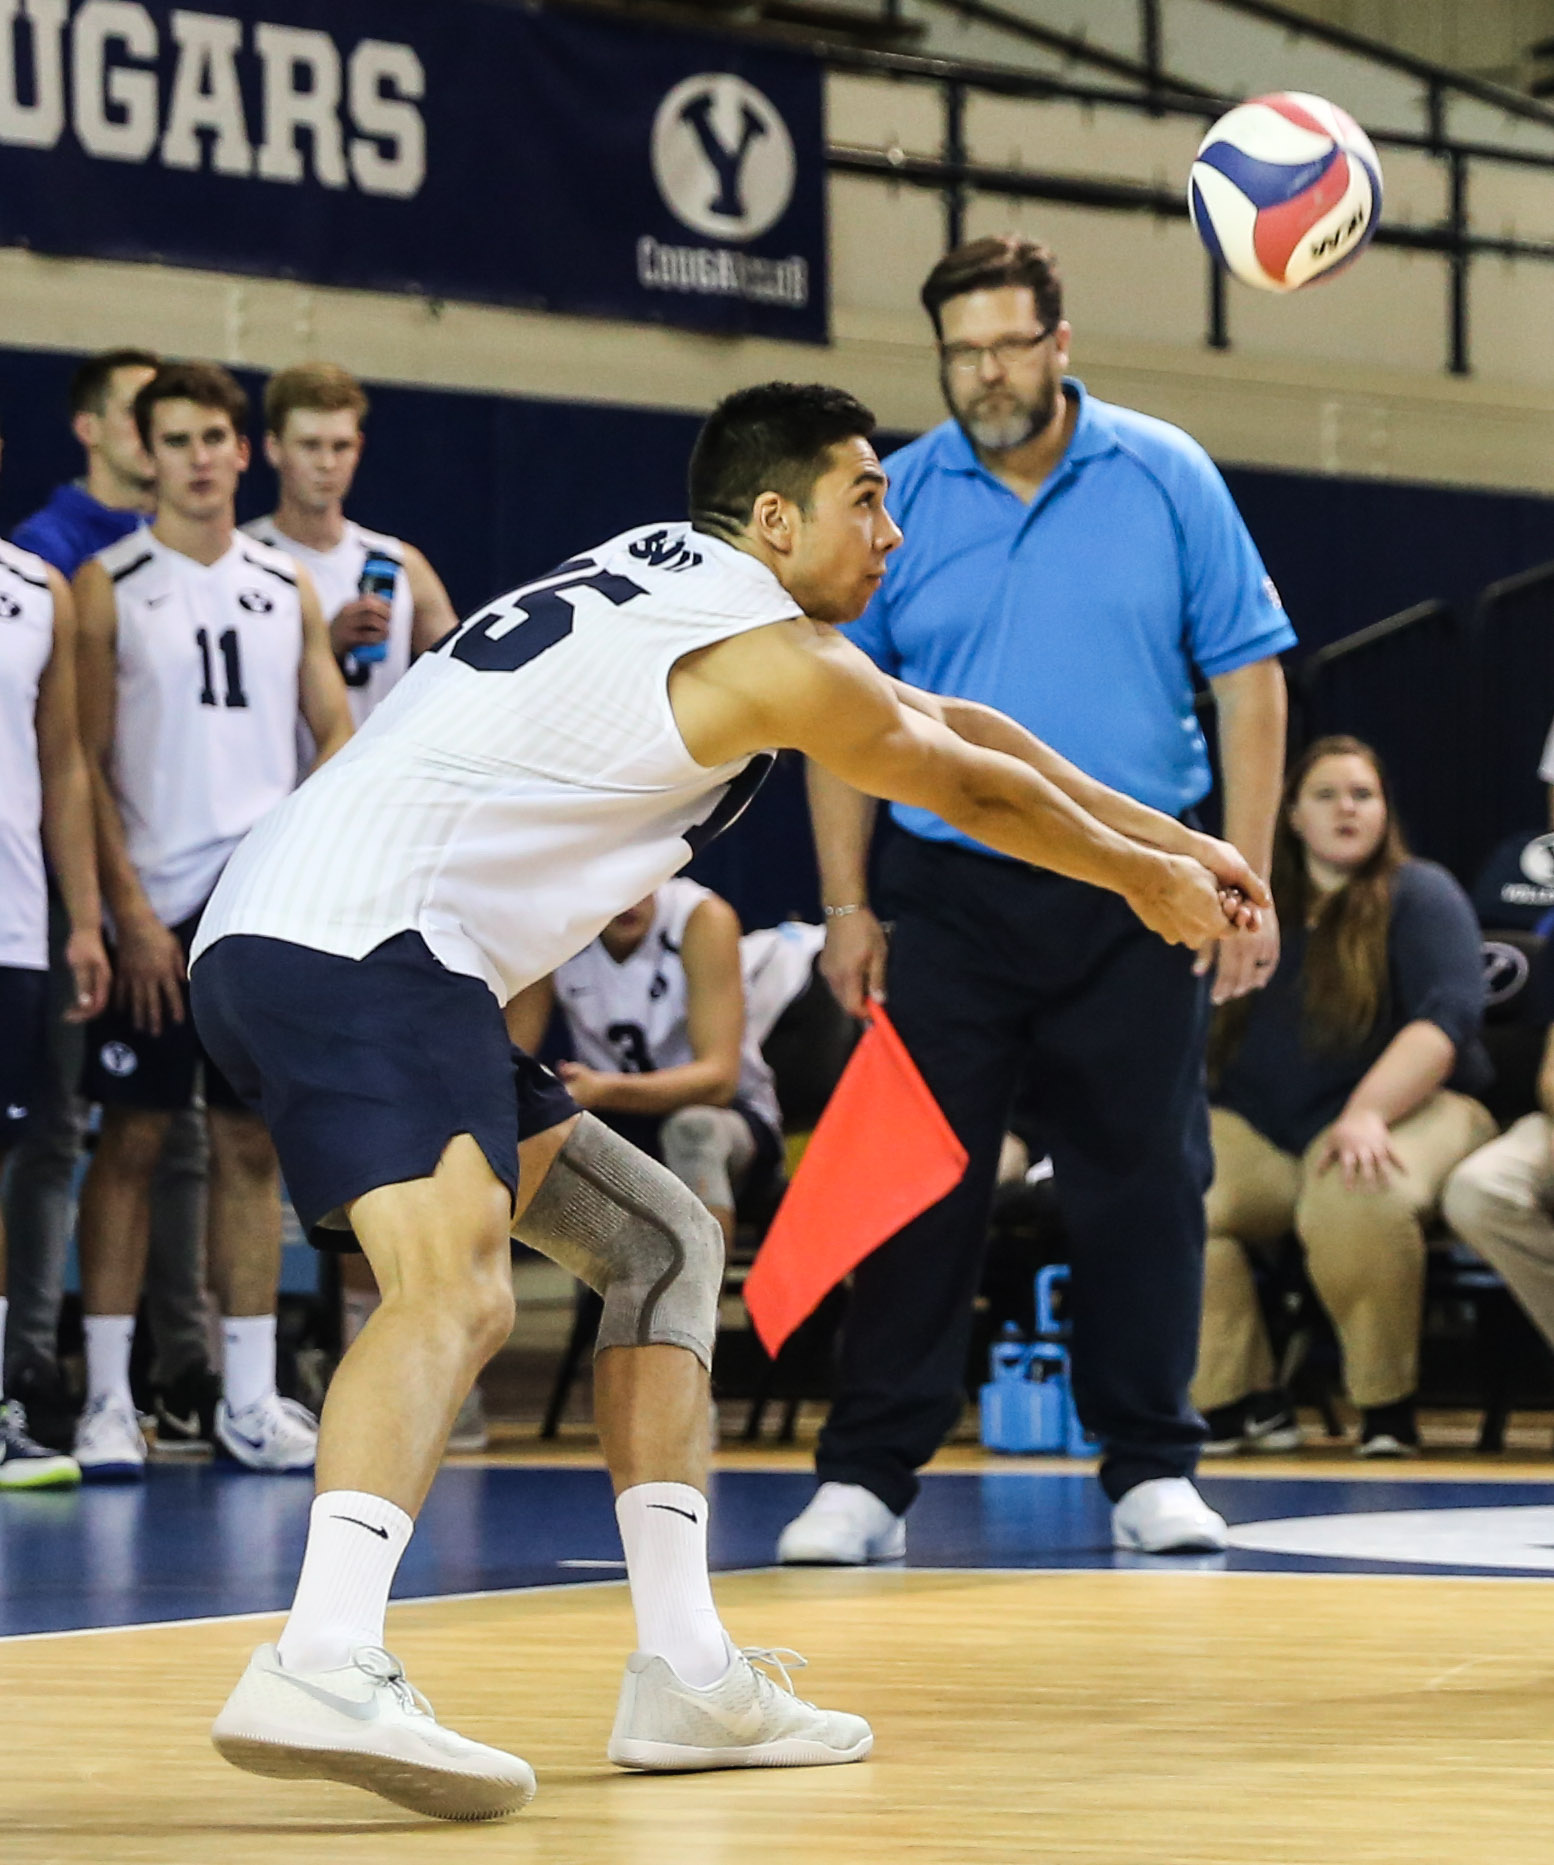 Brenden Sander talks volleyball future - The Daily Universe